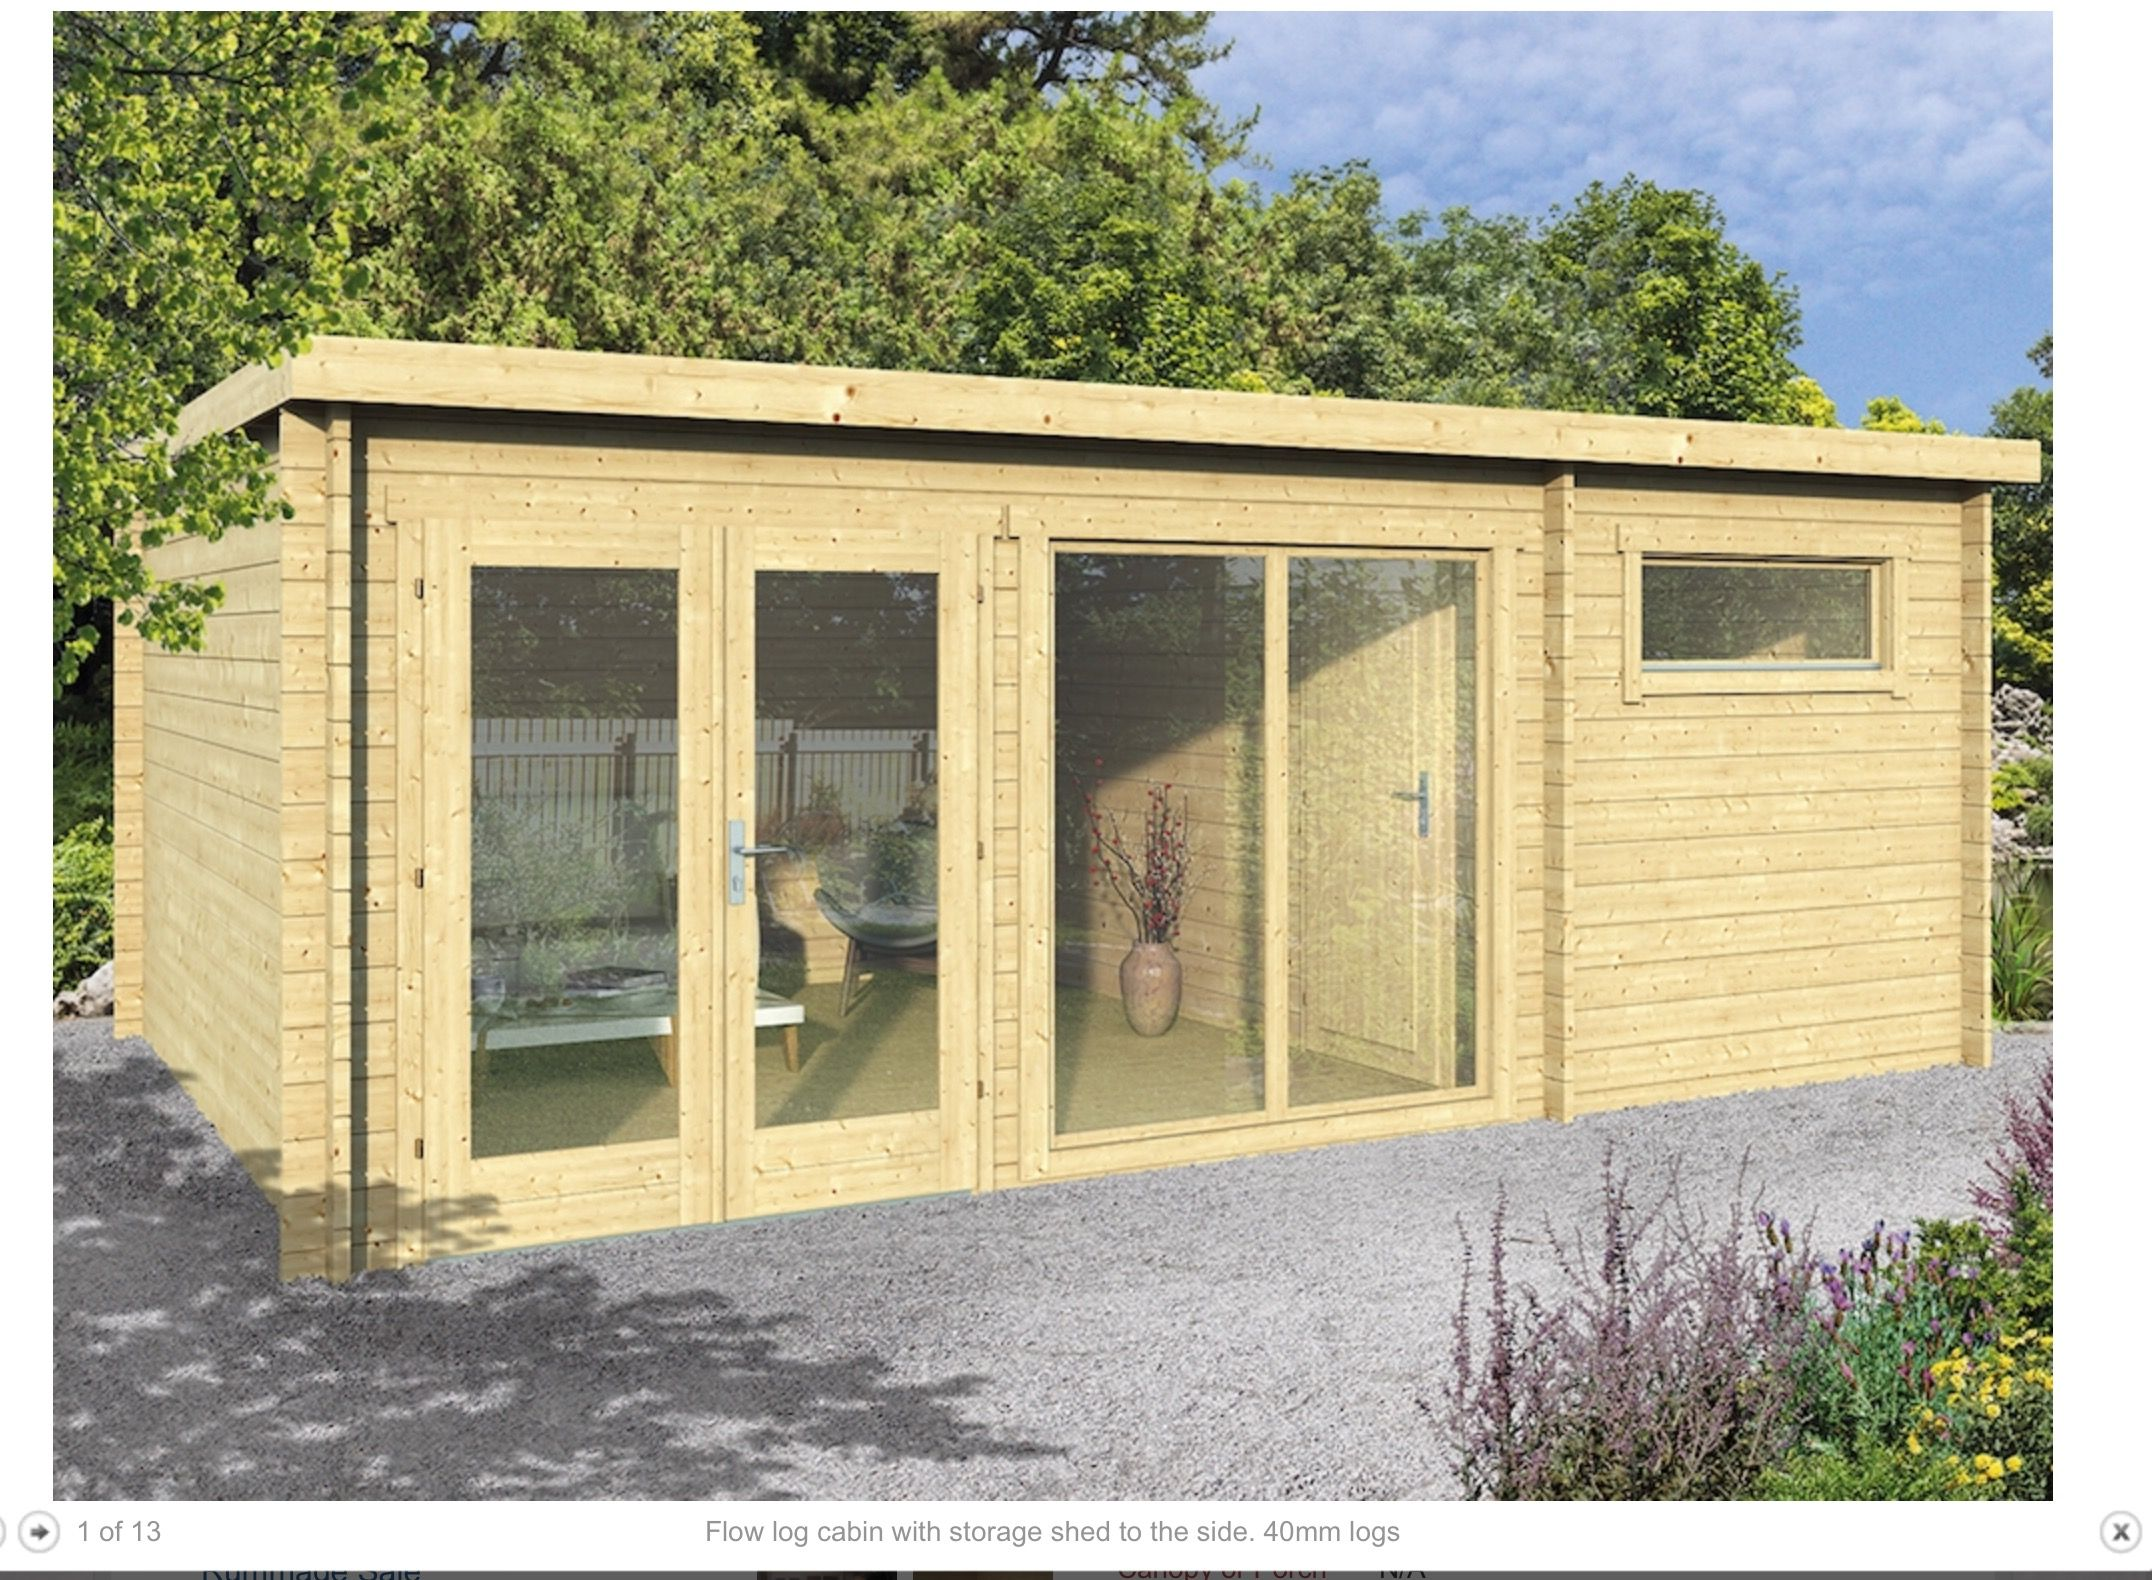 Tuin or garden buildings direct FLOW log cabin or BillyOh ...